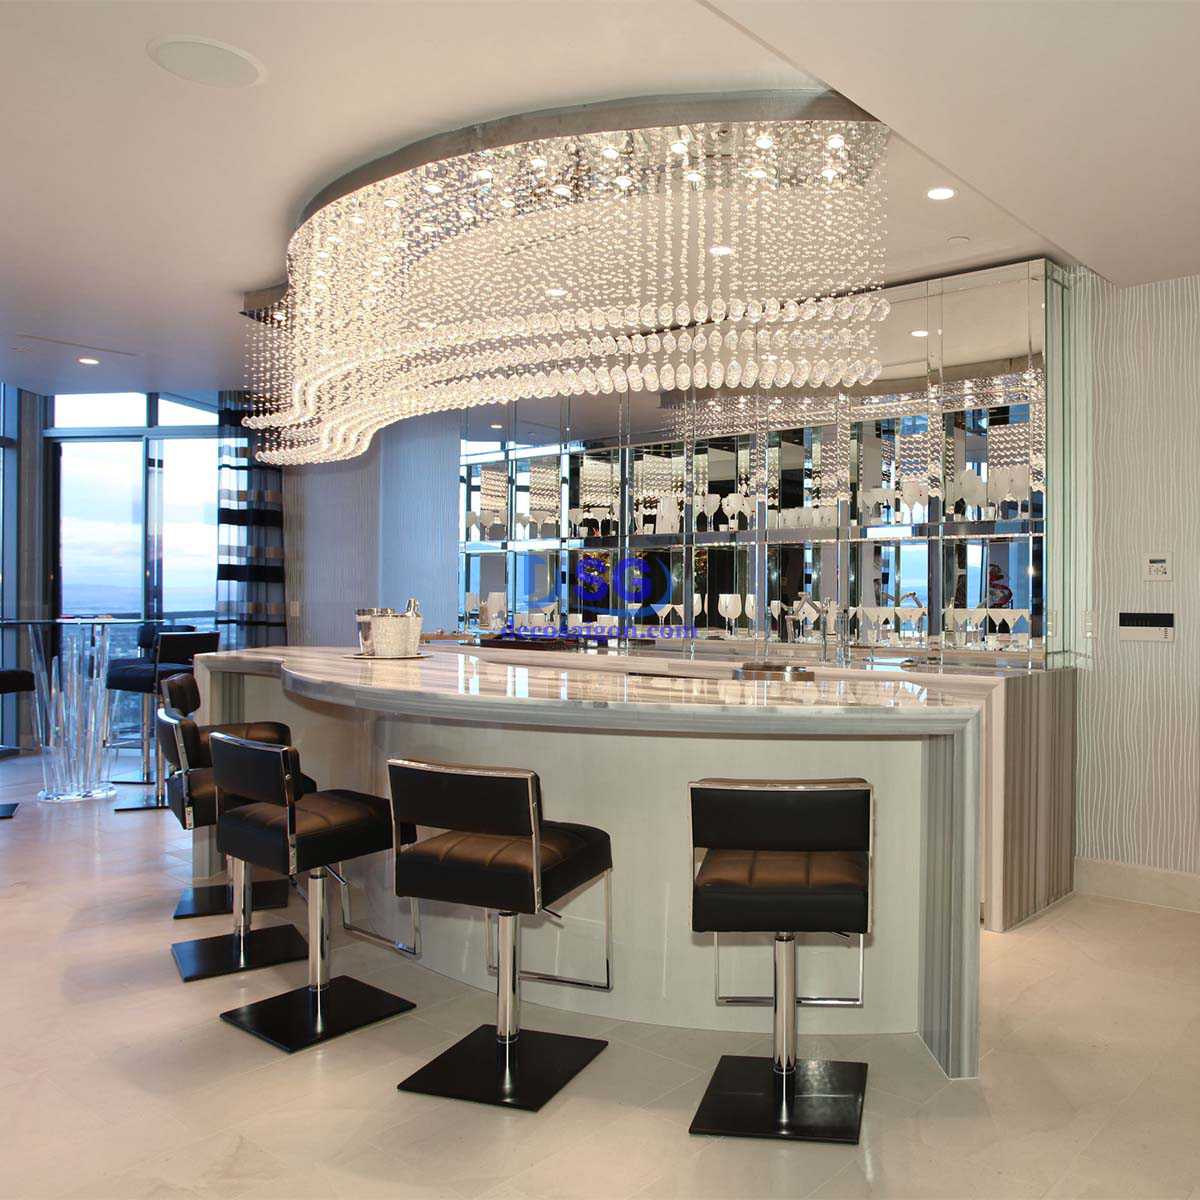 quay-bar-cafe-qbc-004